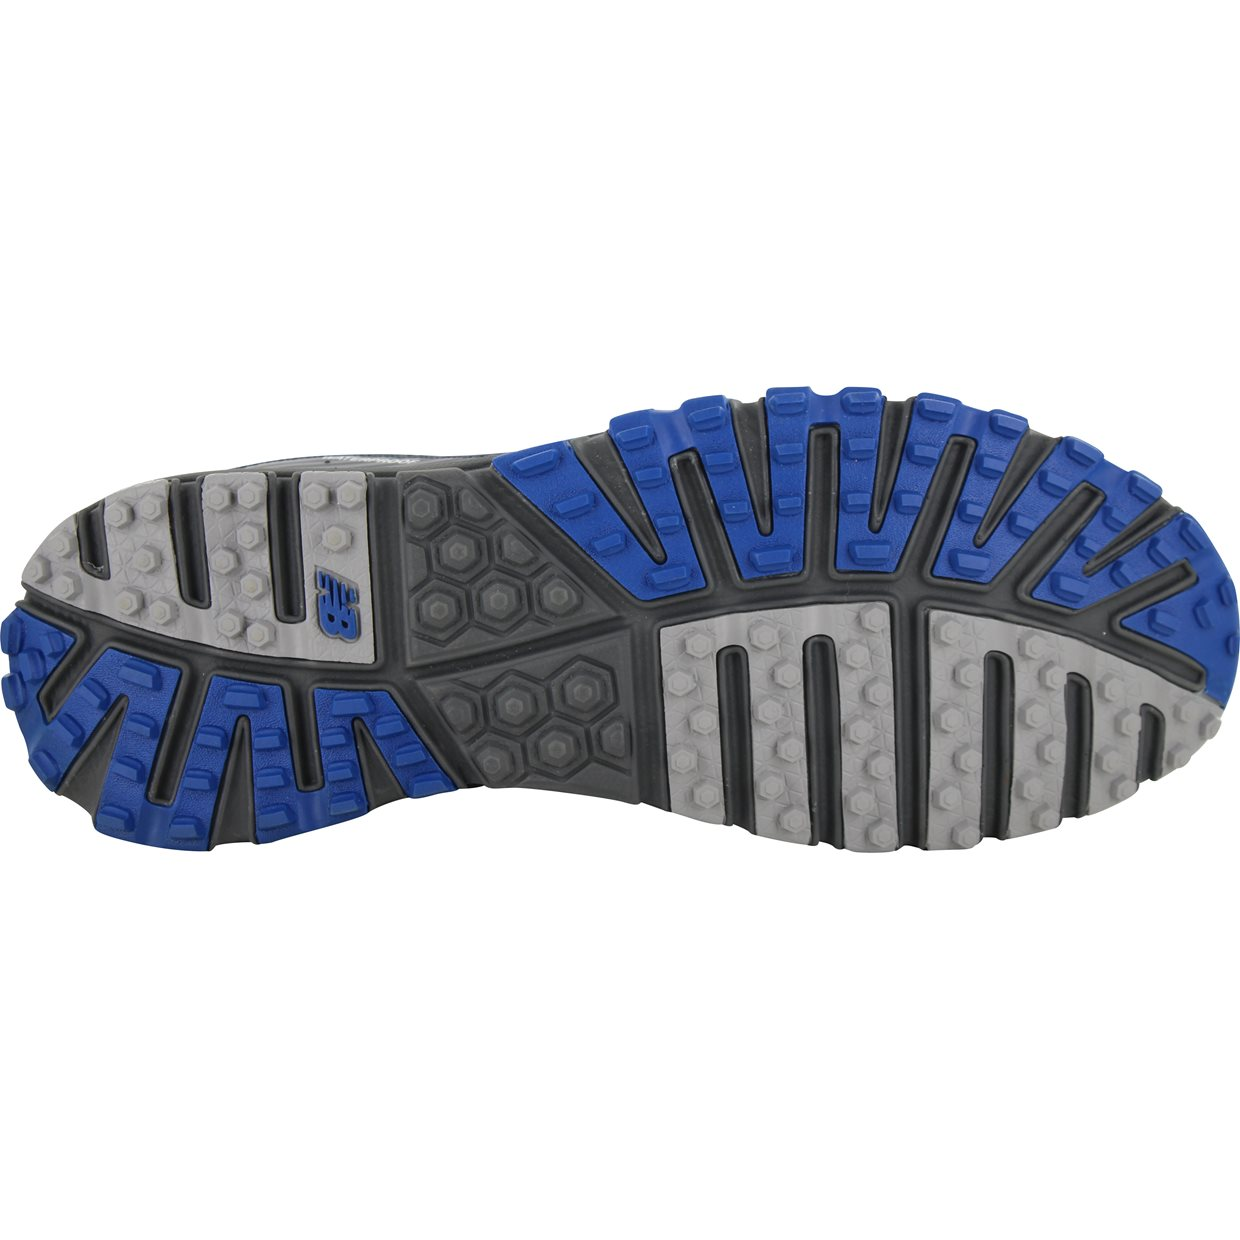 New Balance Minimus 1005 Spikeless Shoes at GlobalGolf.com